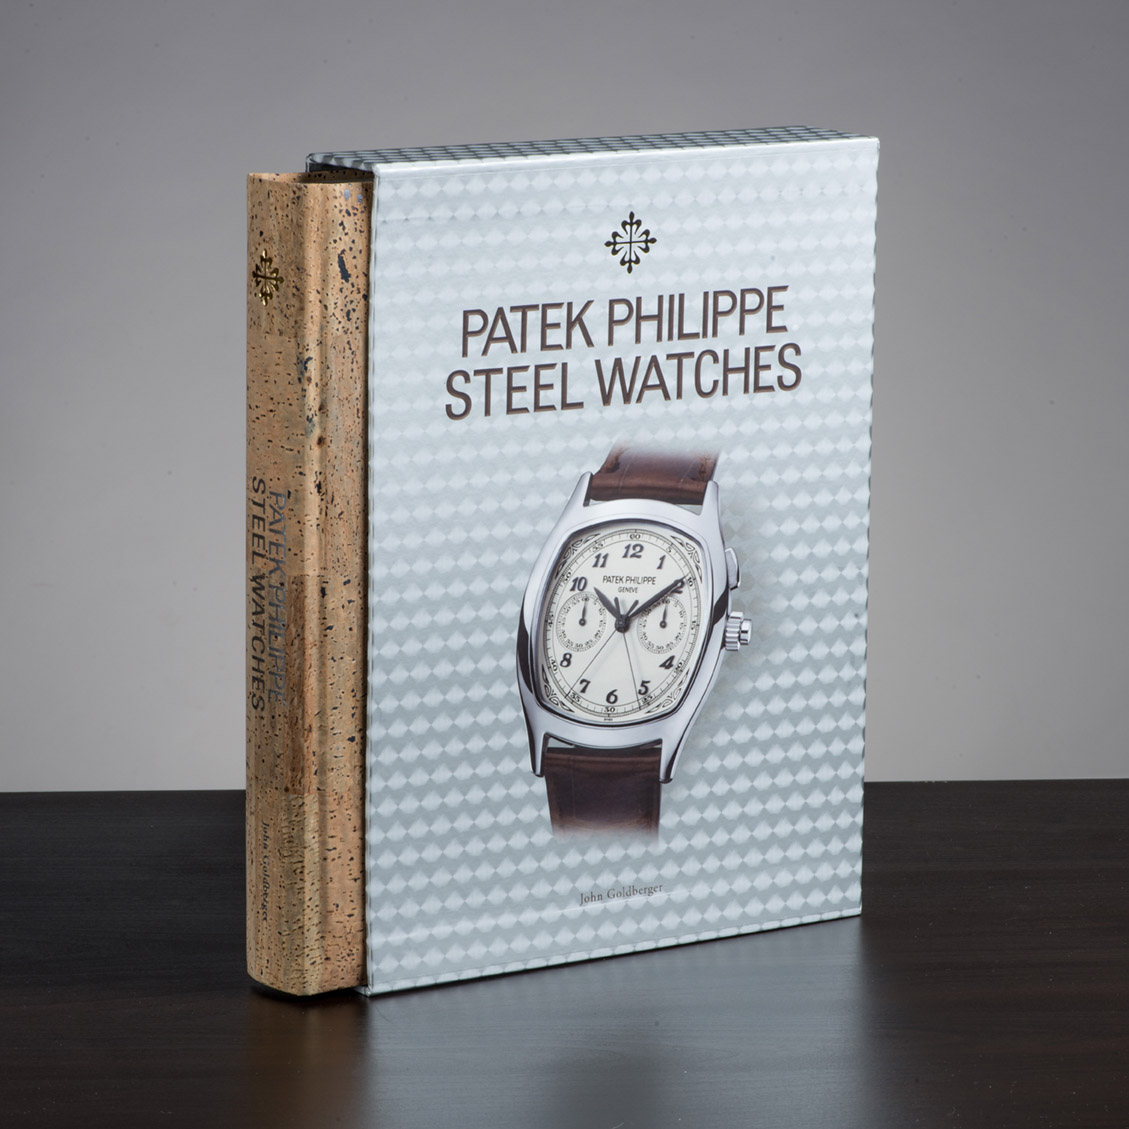 P Philippe Watch Patek Philippe Steel Watches The History Book By Guido Mondani